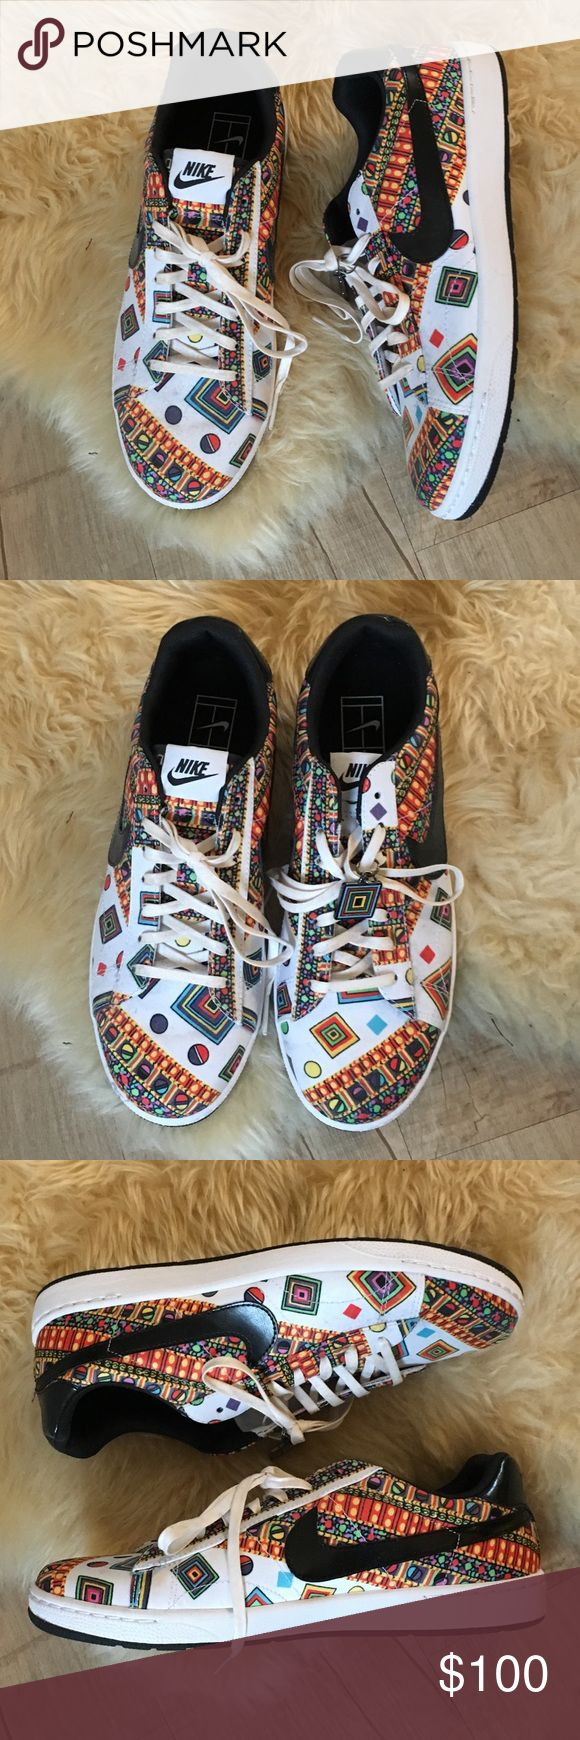 NWOB Nike Liberty Tennis Classic Ultra Leather NWOB LIMITED EDITION NIKE LIBERTY COLLECTION!!  I bought this as a collector's item (I LOVE ALLLL THINGS LIBERTY OF LONDON!), and I am sad to part ways with it but want to find them a good home.  NEVER USED!!!  Box is gone because I bought them on vacation. Nike Shoes Sneakers